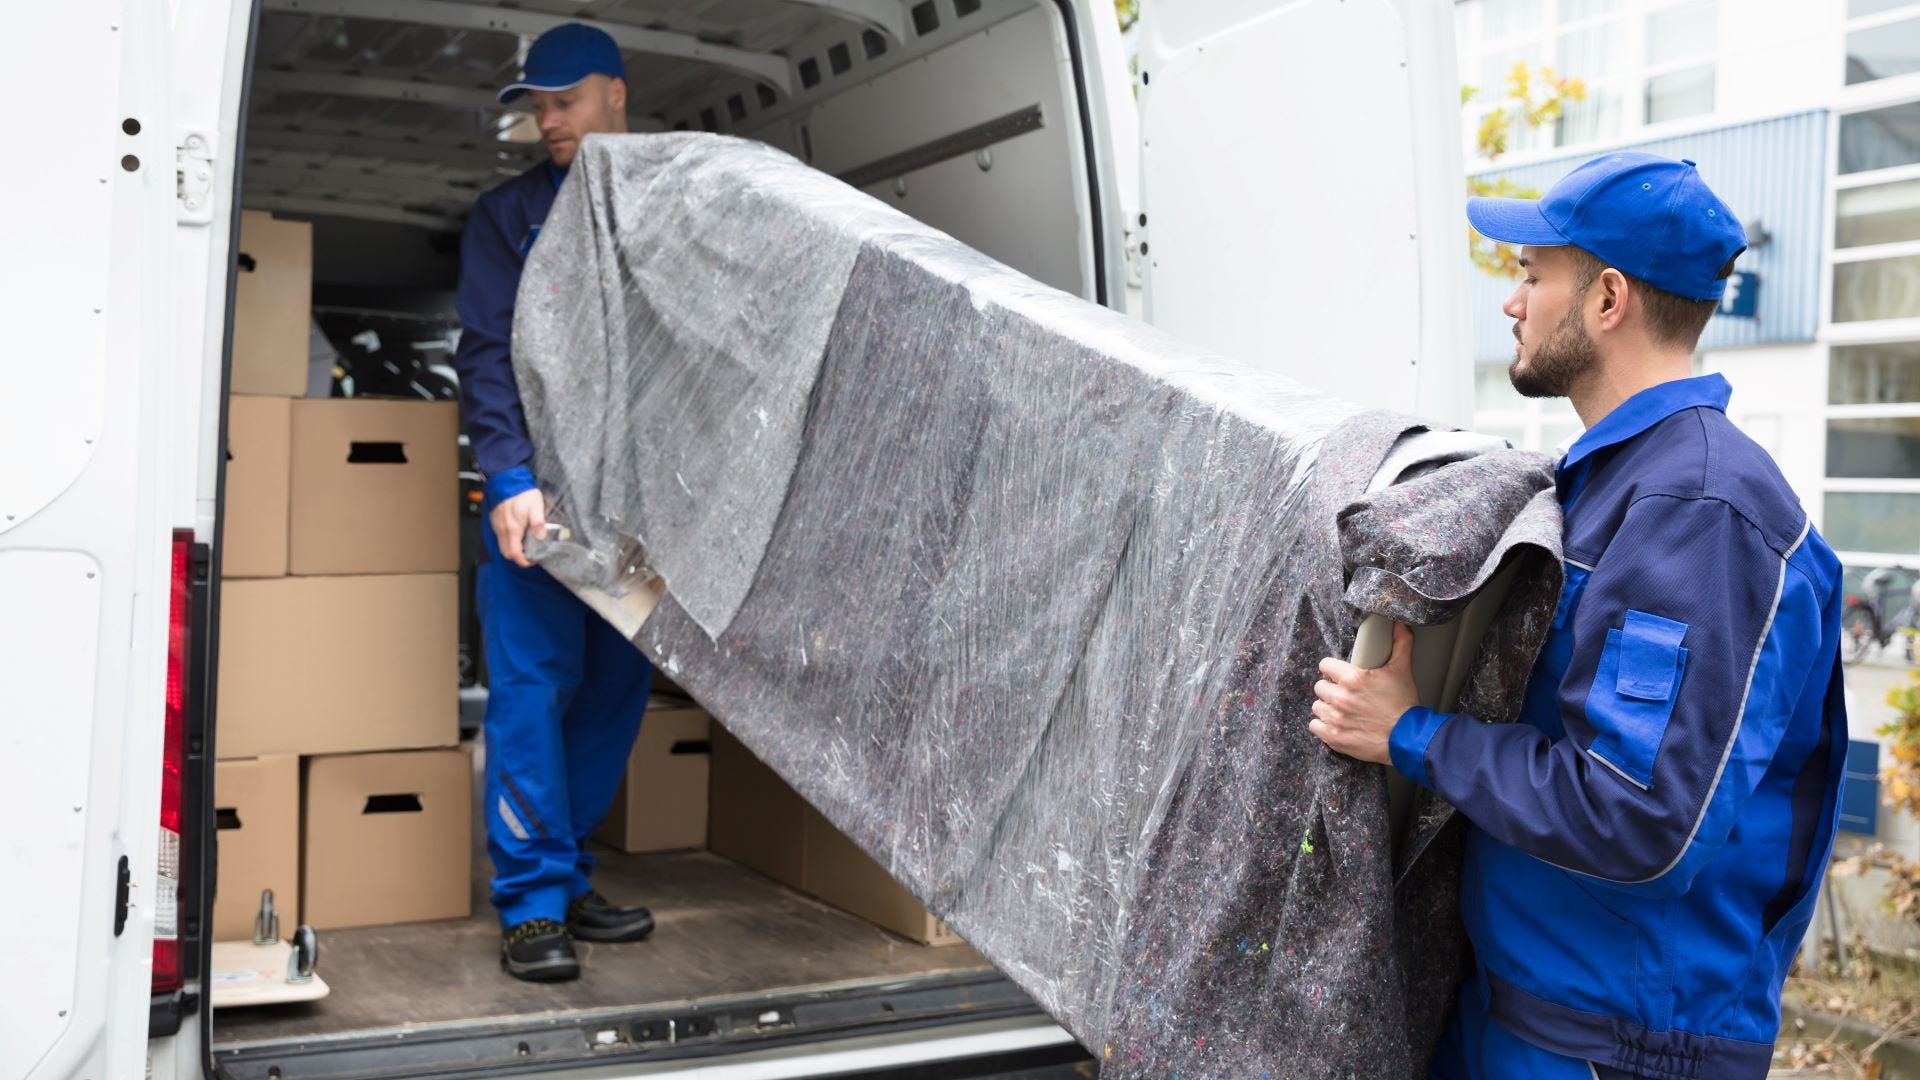 Two movers loading a piece of furniture on a moving truck.